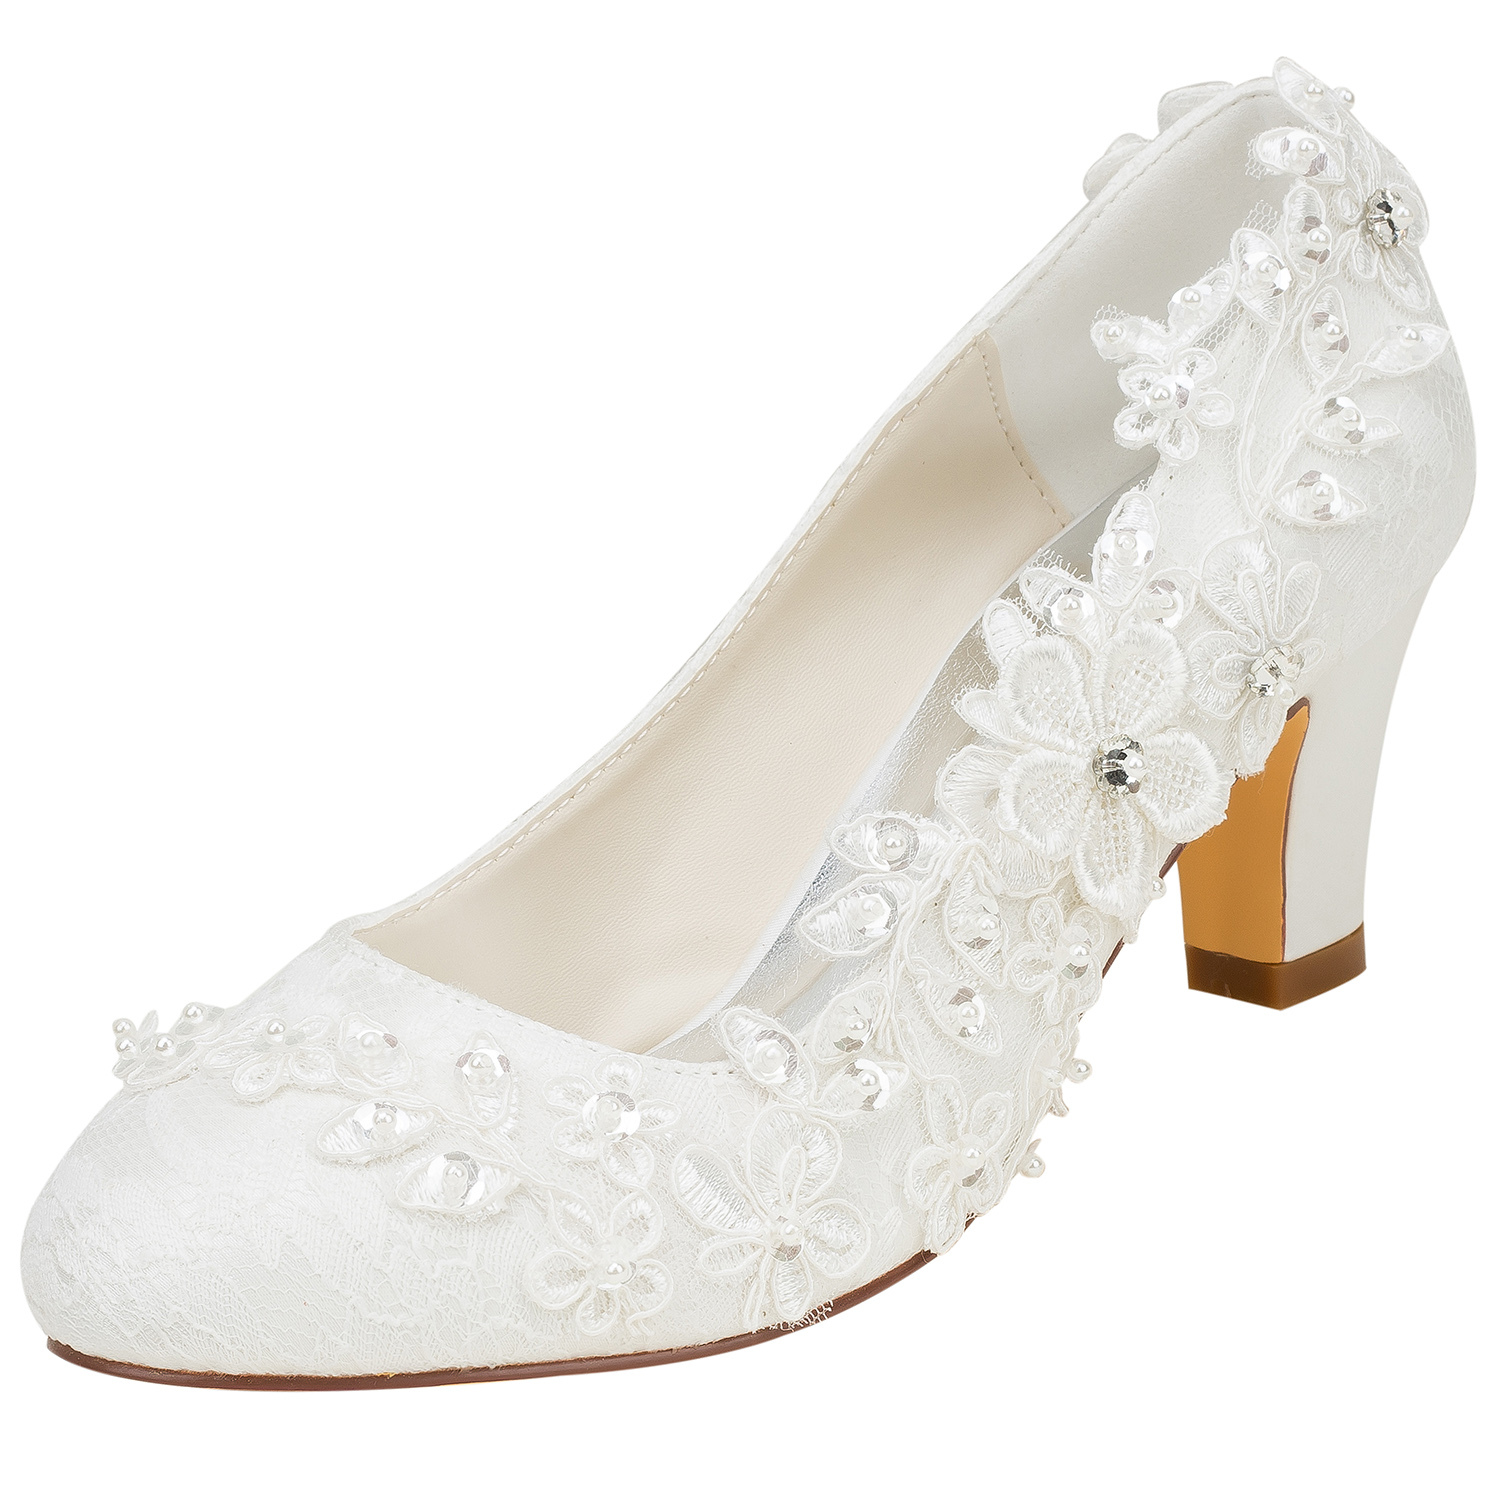 c5feef205437b Ivory Wedding Shoes Silk Round Toe Flowers Beaded Low Heel Bridal Pumps